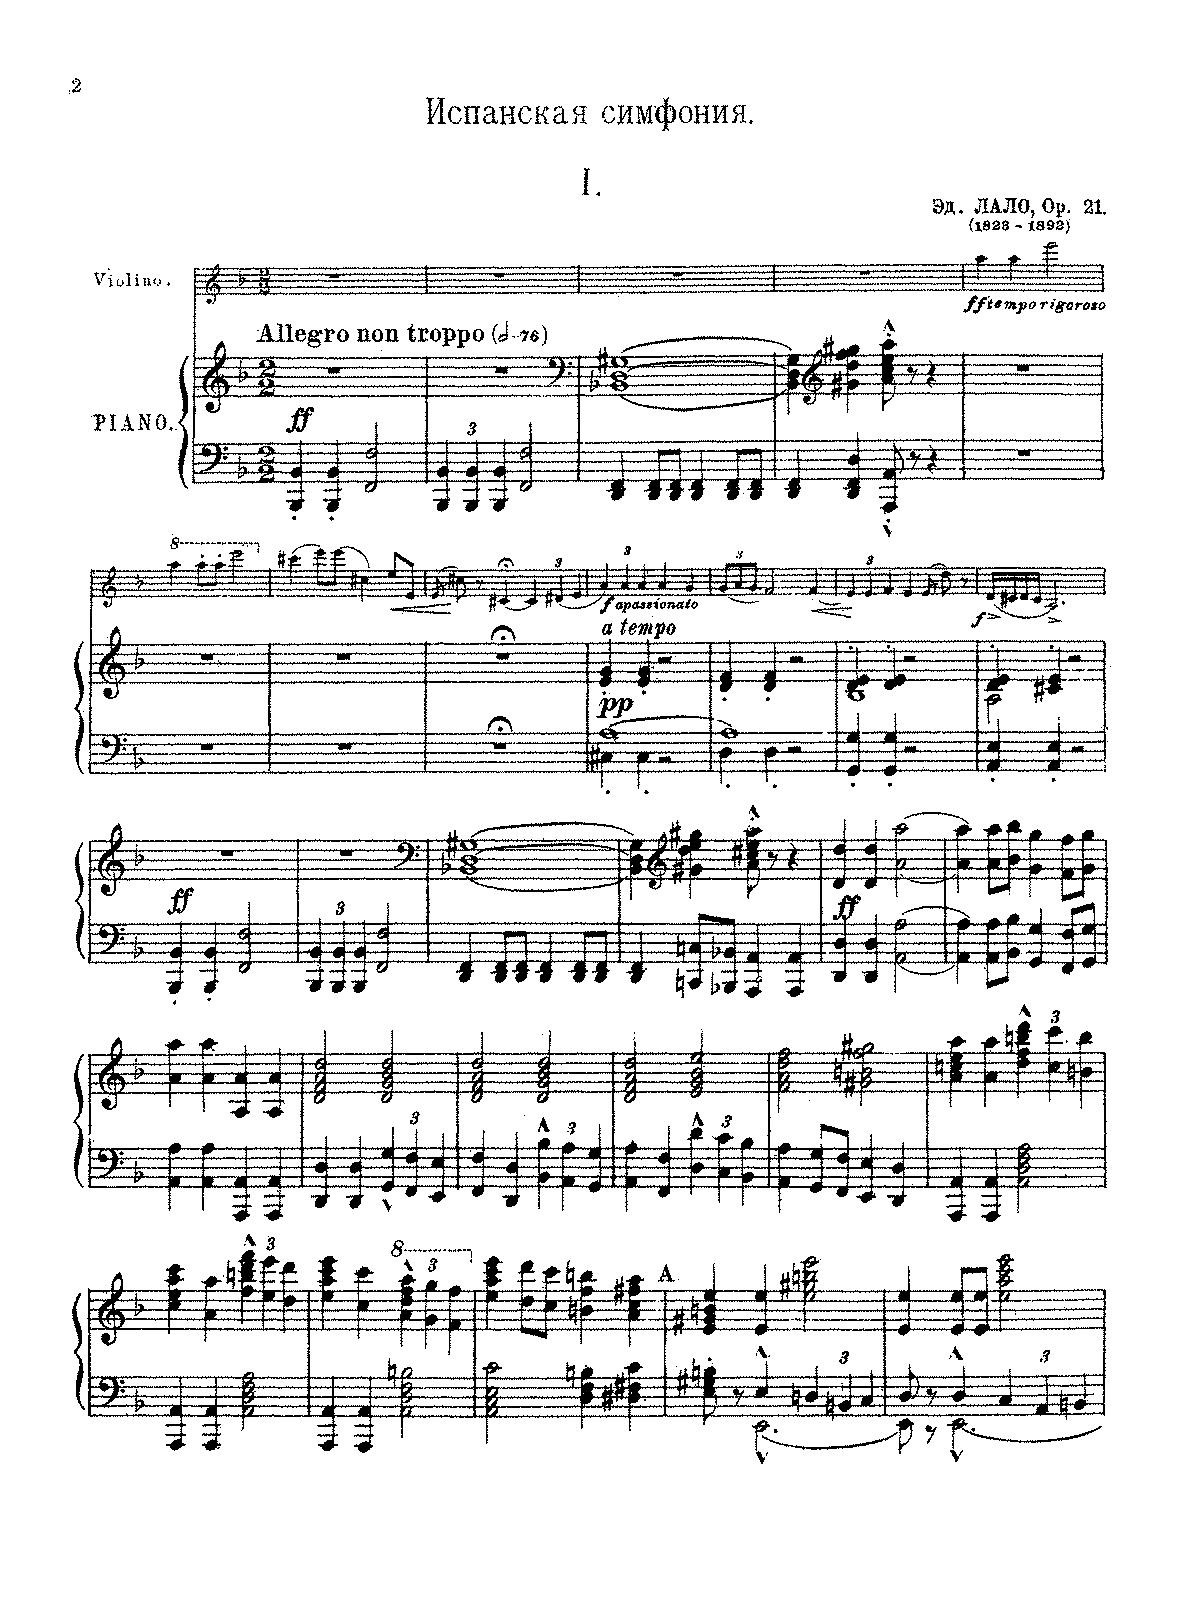 Lalo - Symphonie Espagnole in D minor, Op. 21.pdf